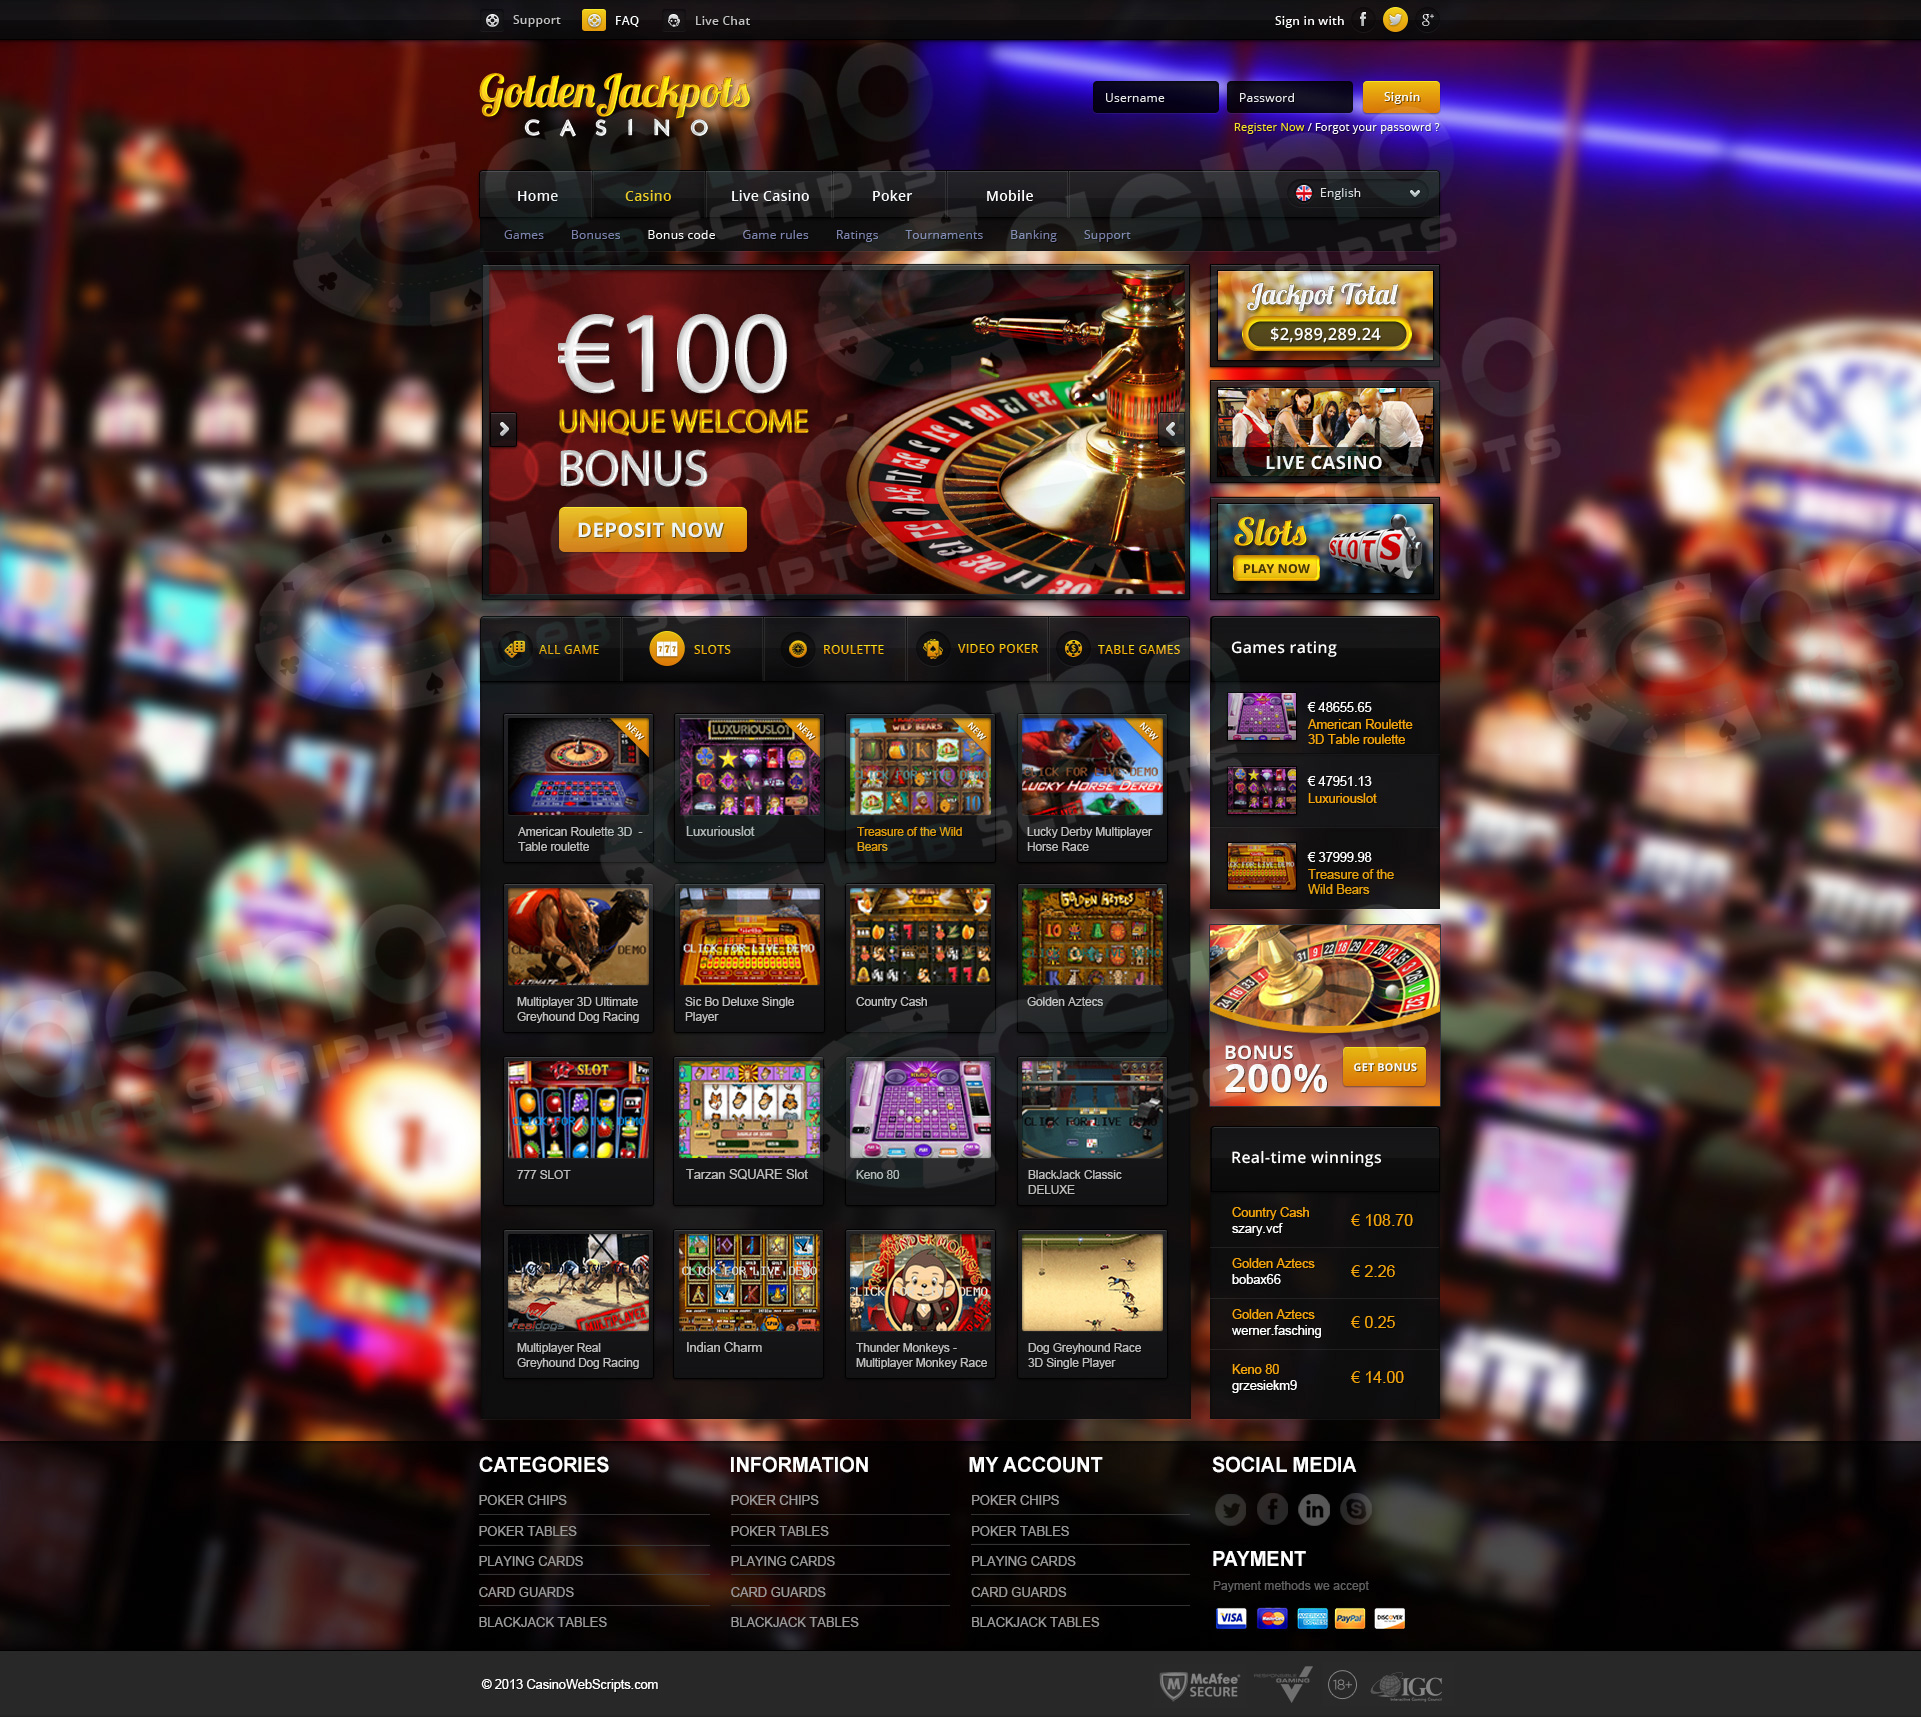 Casinos saucify Noruega casino web scripts - 905102